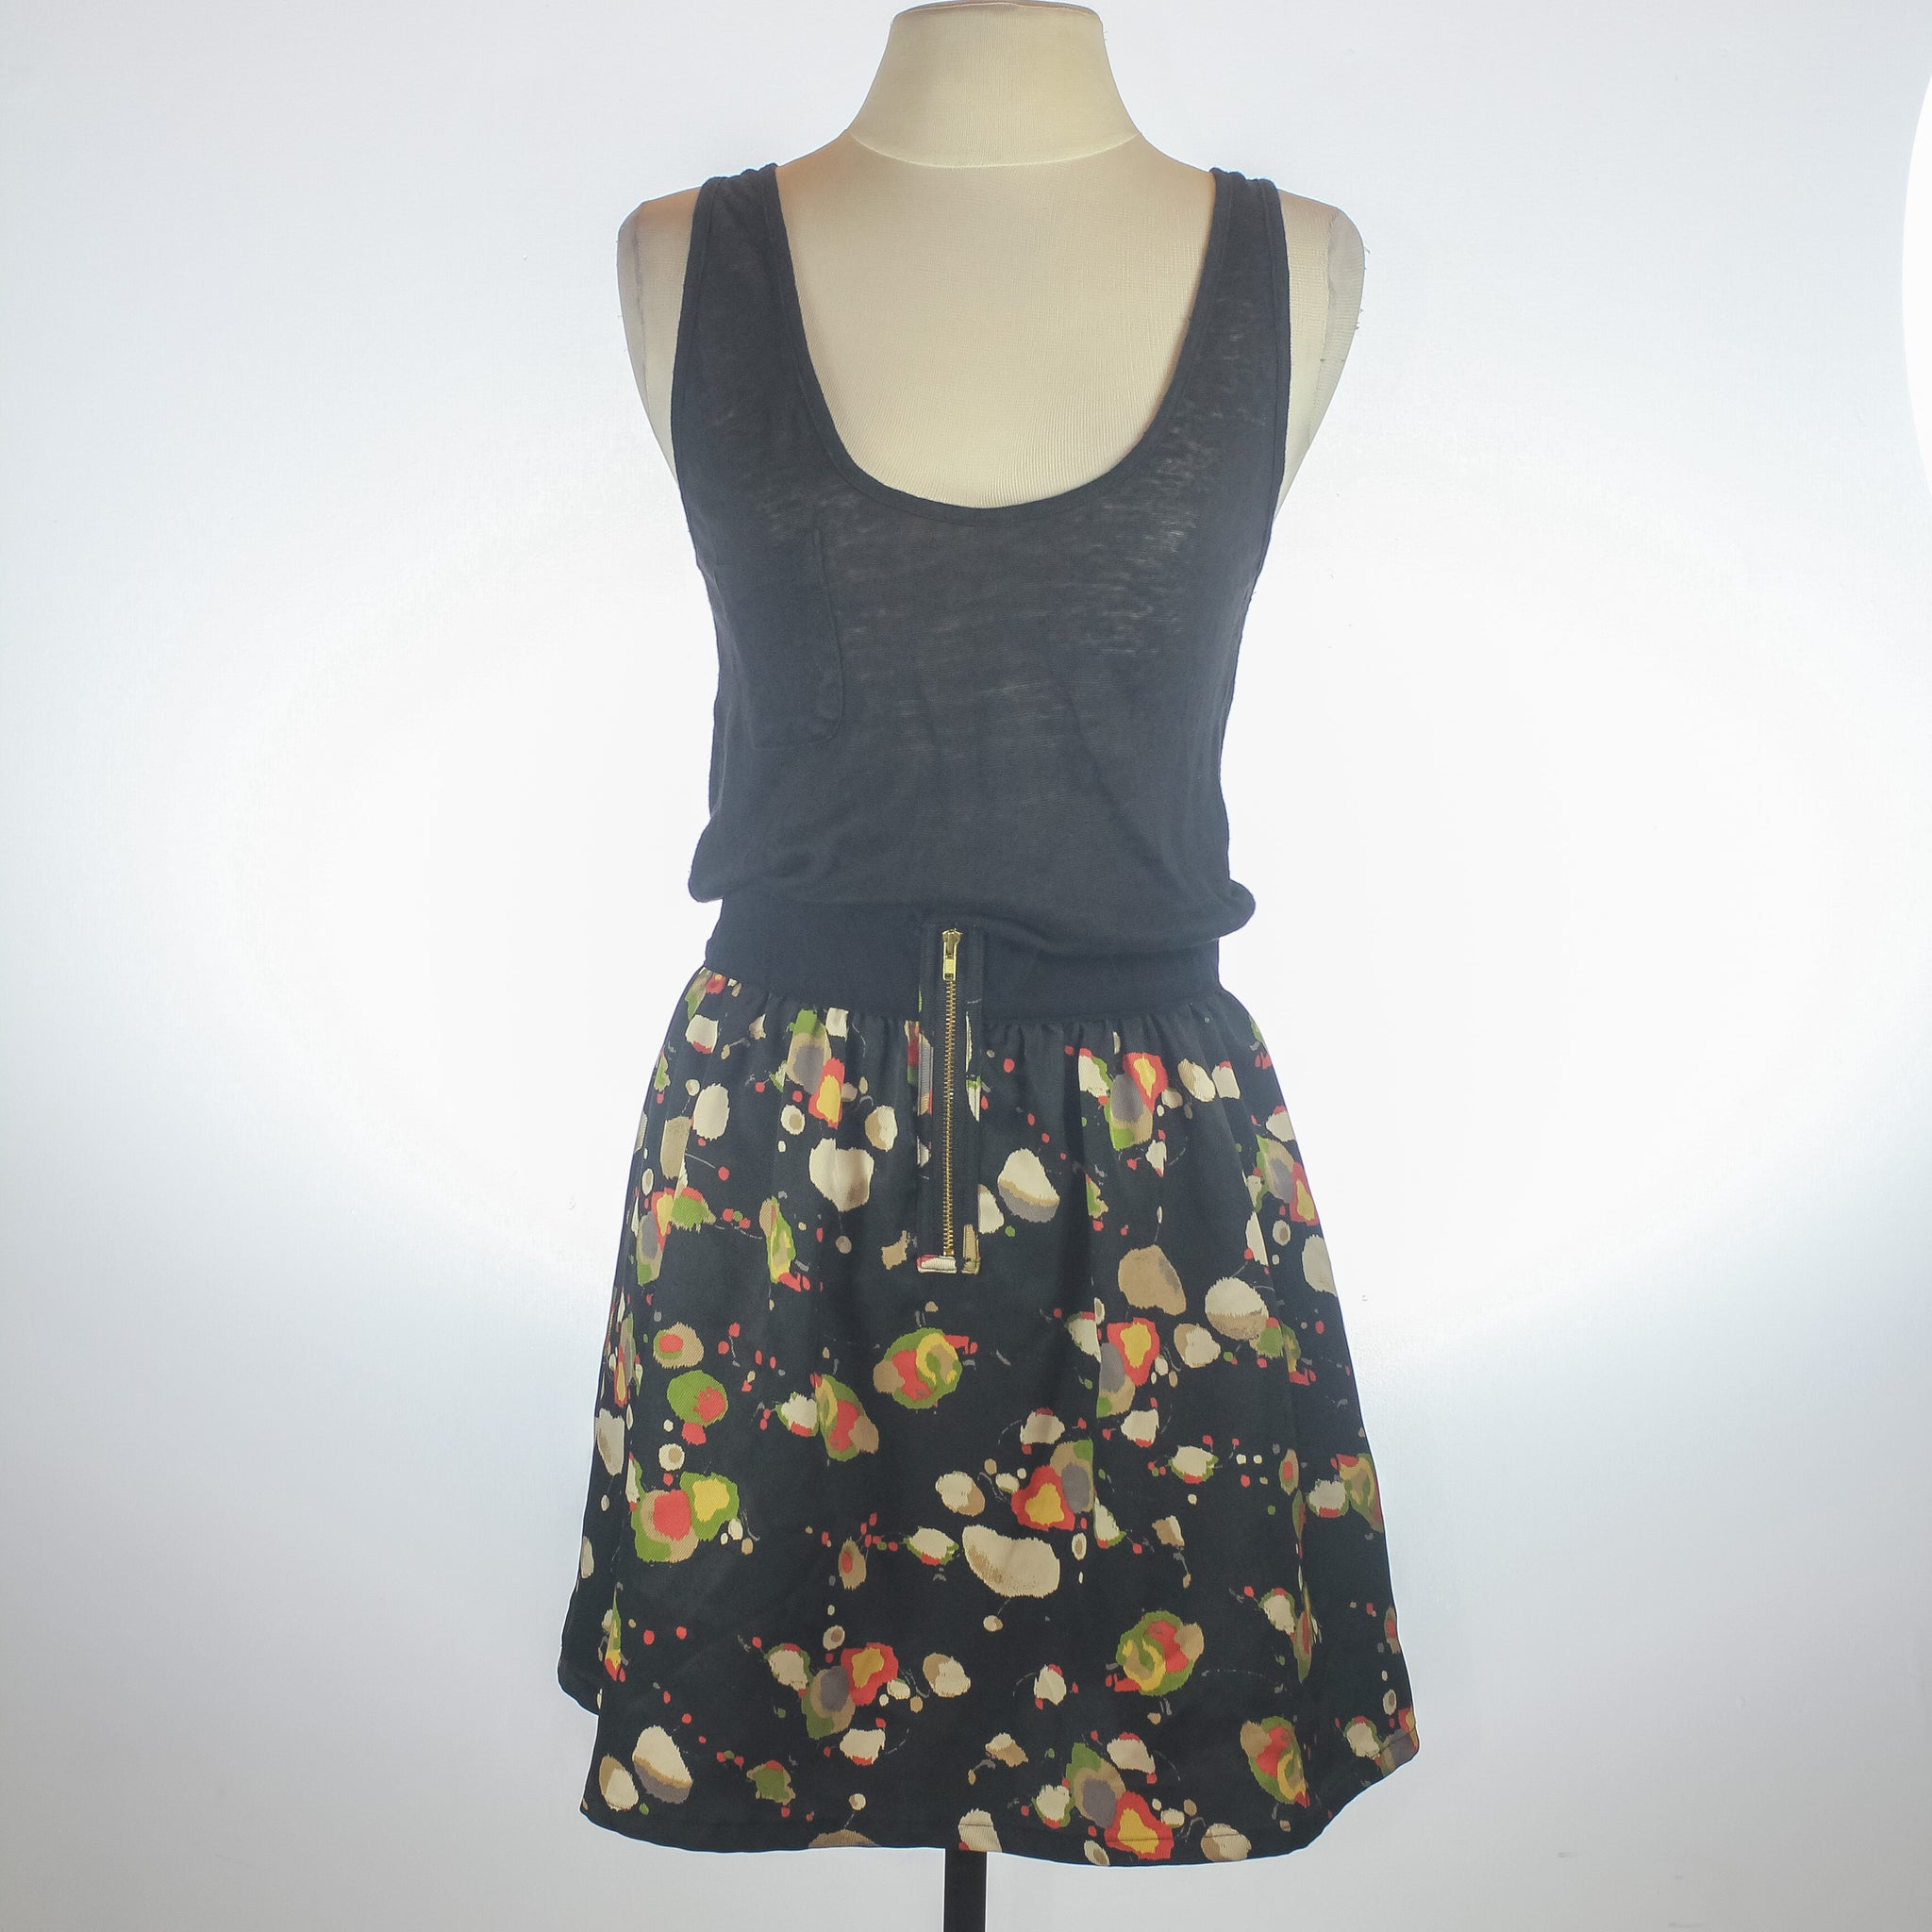 Patterson Black Tank with Printed Skirt Dress